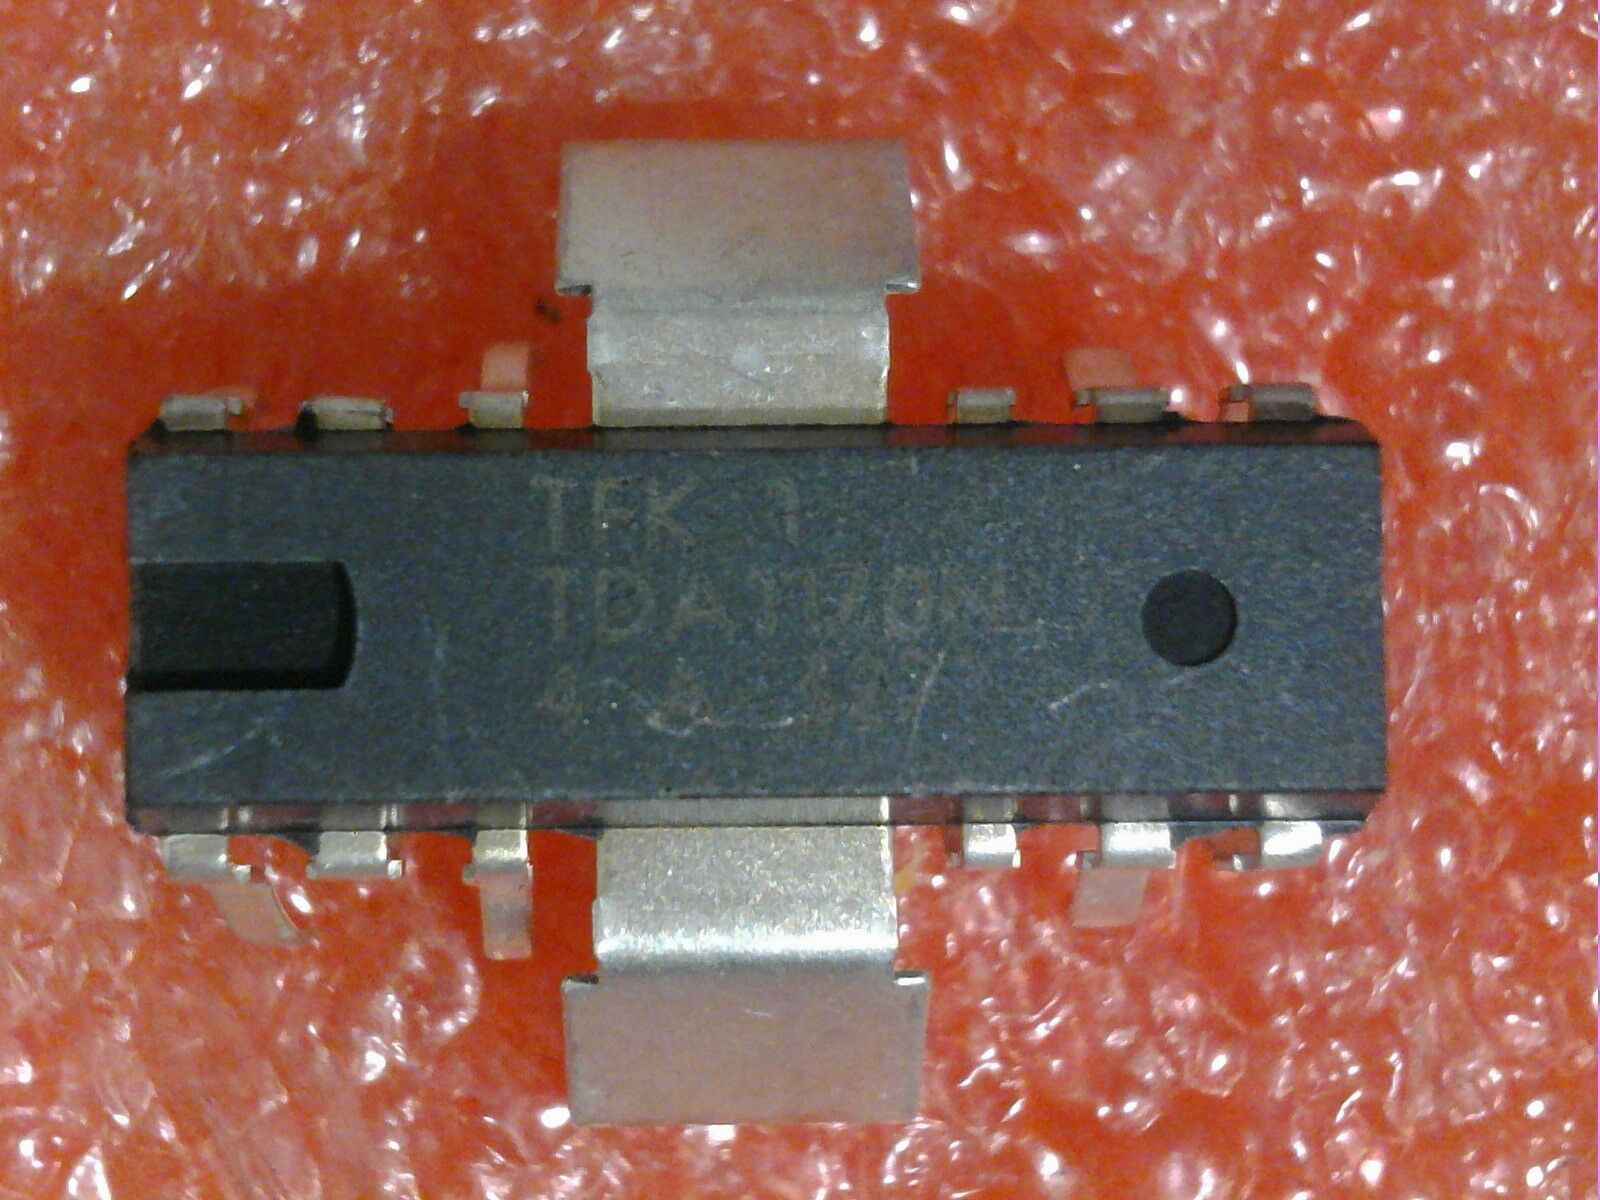 2 Pcstelefunken Tda1170n Low Noise Tv Vert Deflection System Circuits Picture 1 Of 3